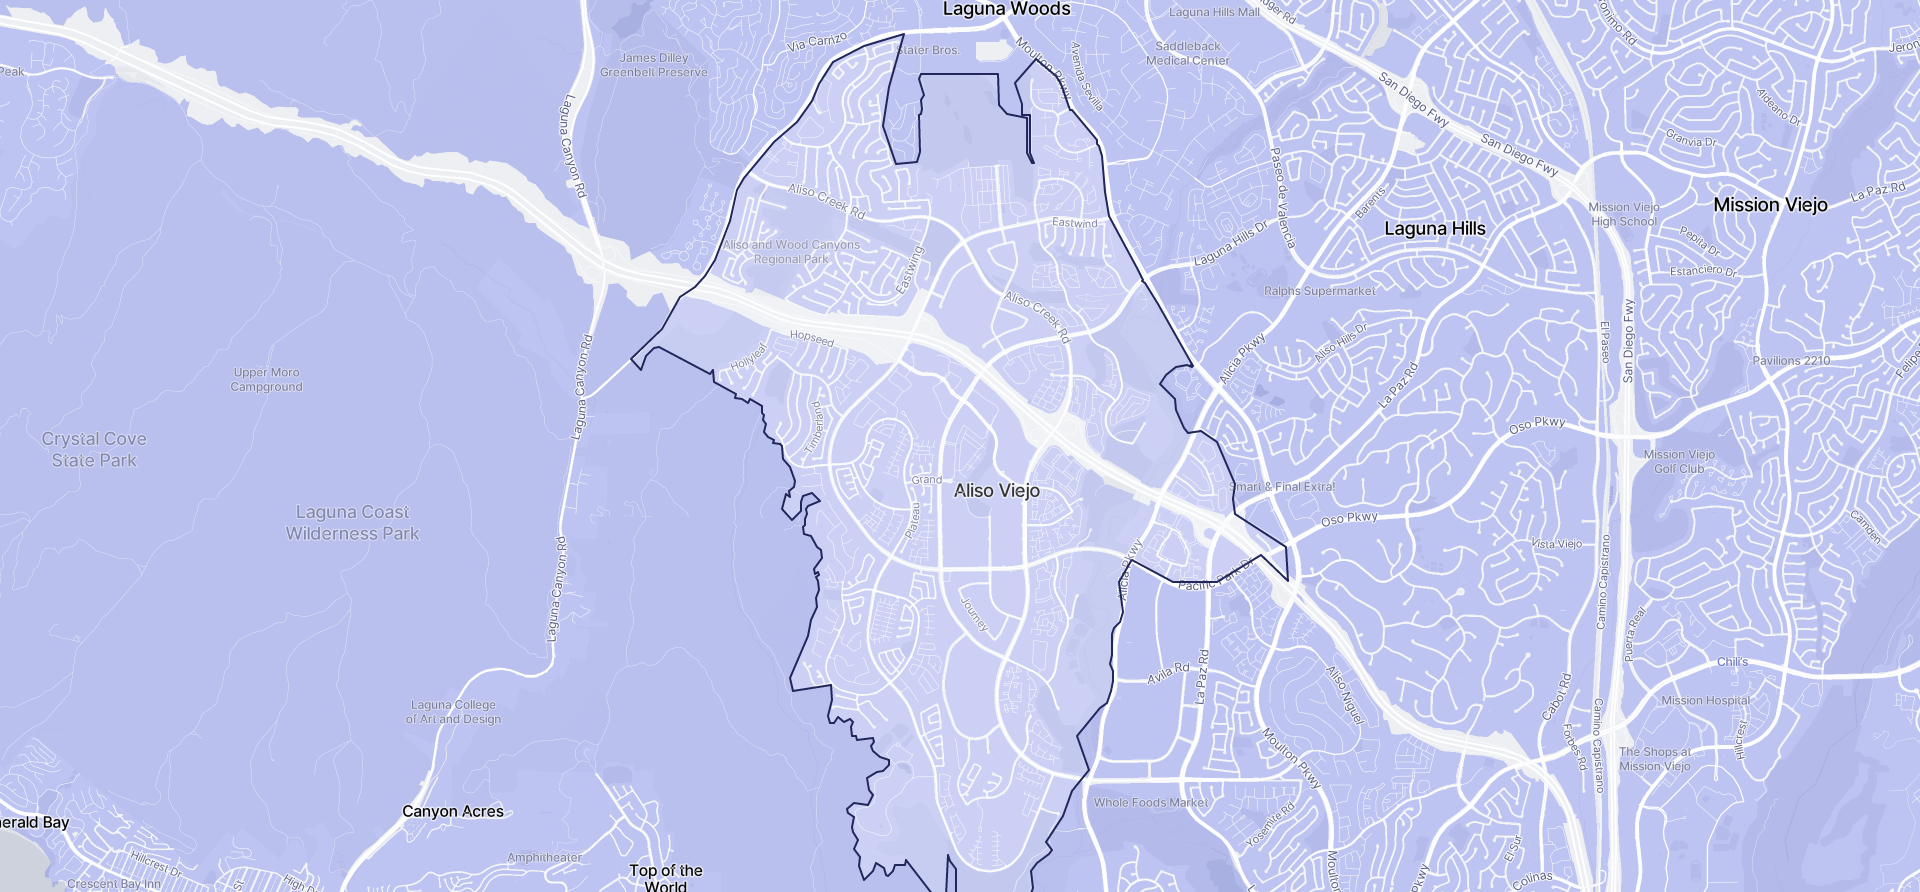 Image of Aliso Viejo boundaries on a map.